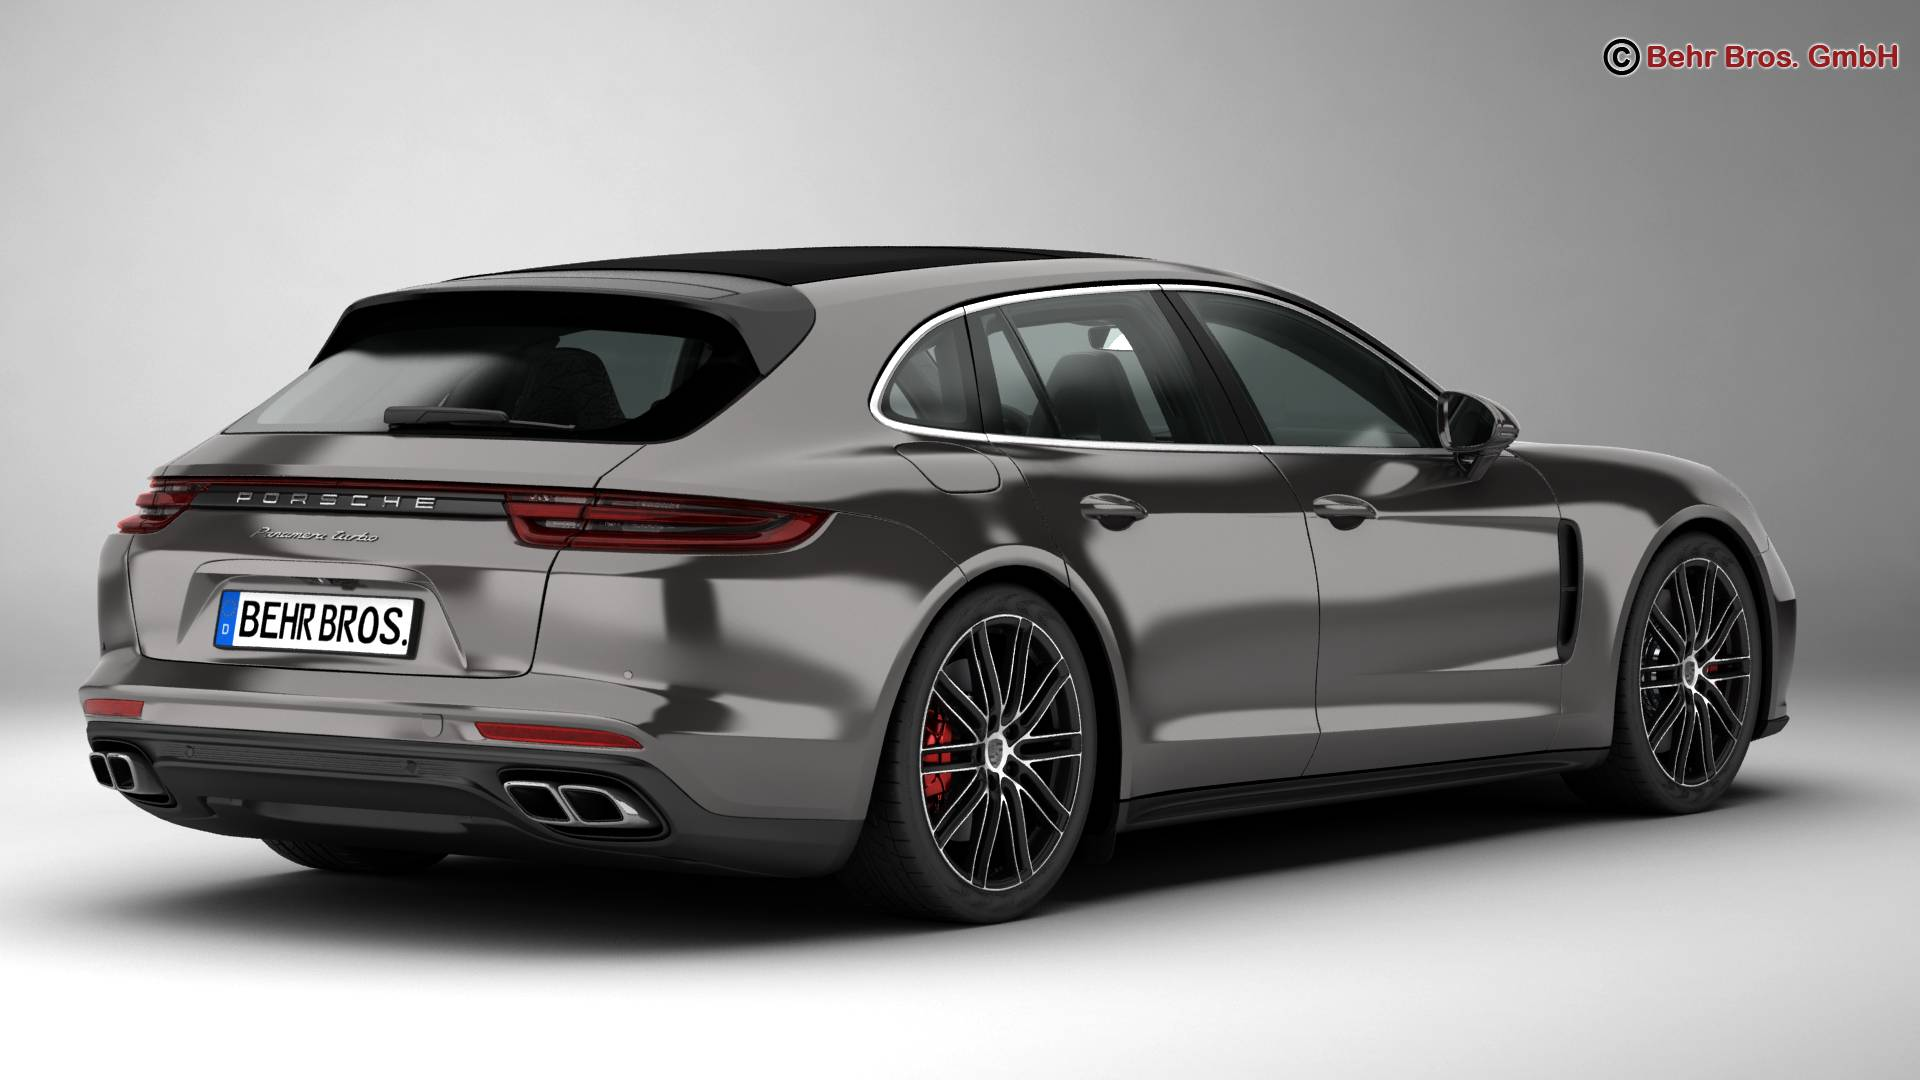 porsche panamera sport turismo turbo 2018 3d model. Black Bedroom Furniture Sets. Home Design Ideas